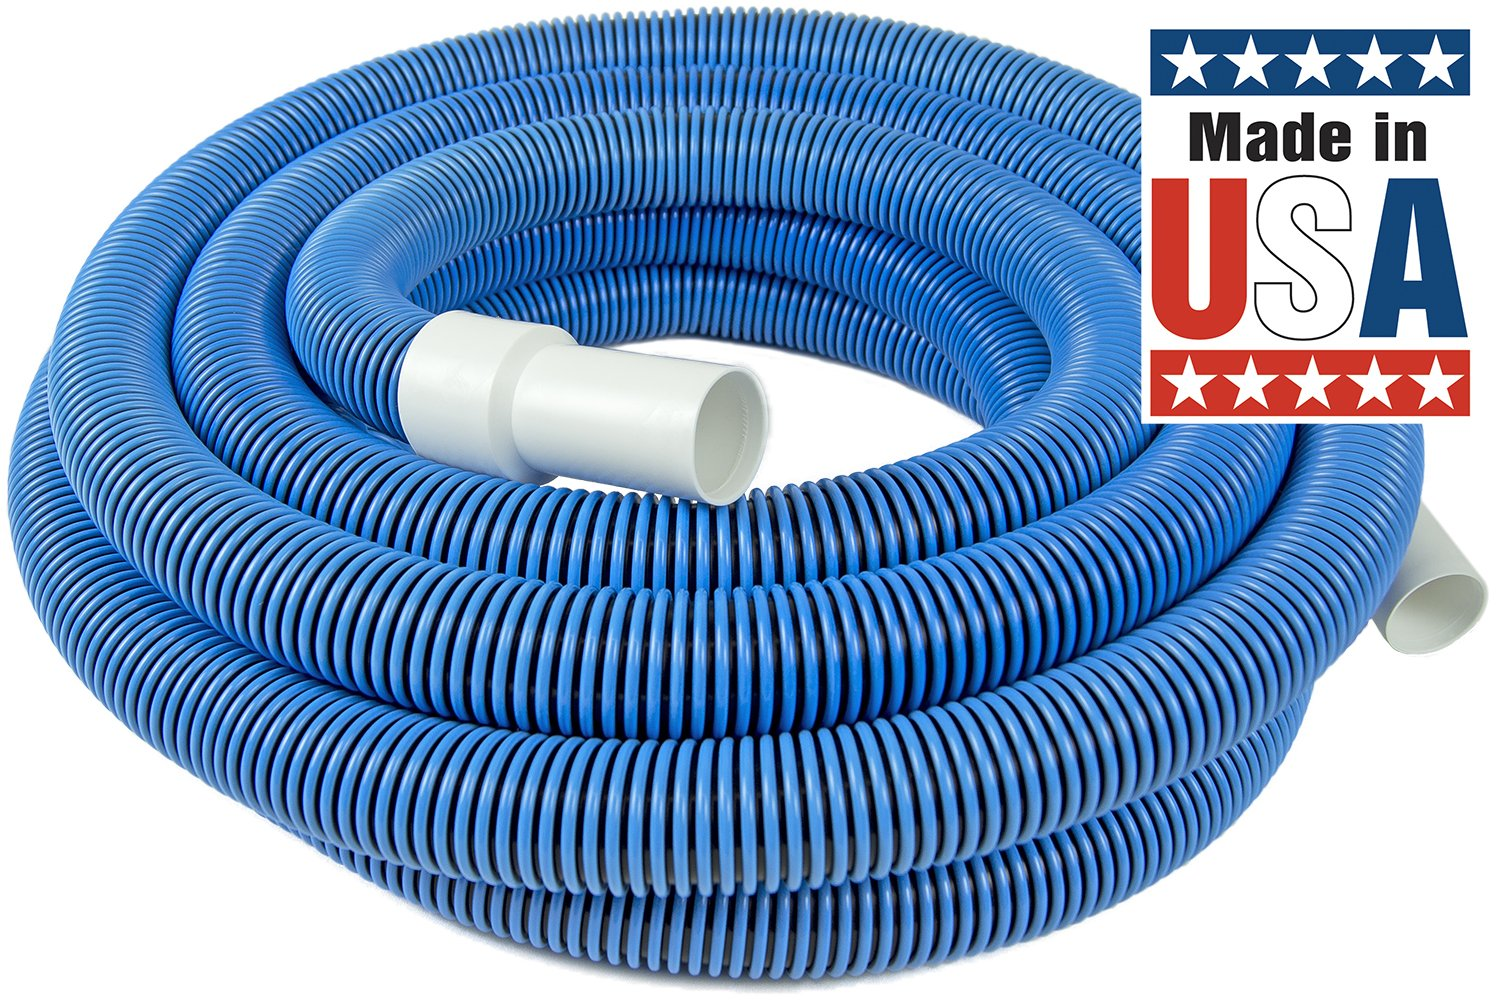 Poolmaster 33440 Heavy Duty In-Ground Pool Vacuum Hose With Swivel Cuff, 1-1/2-Inch by 40-Feet